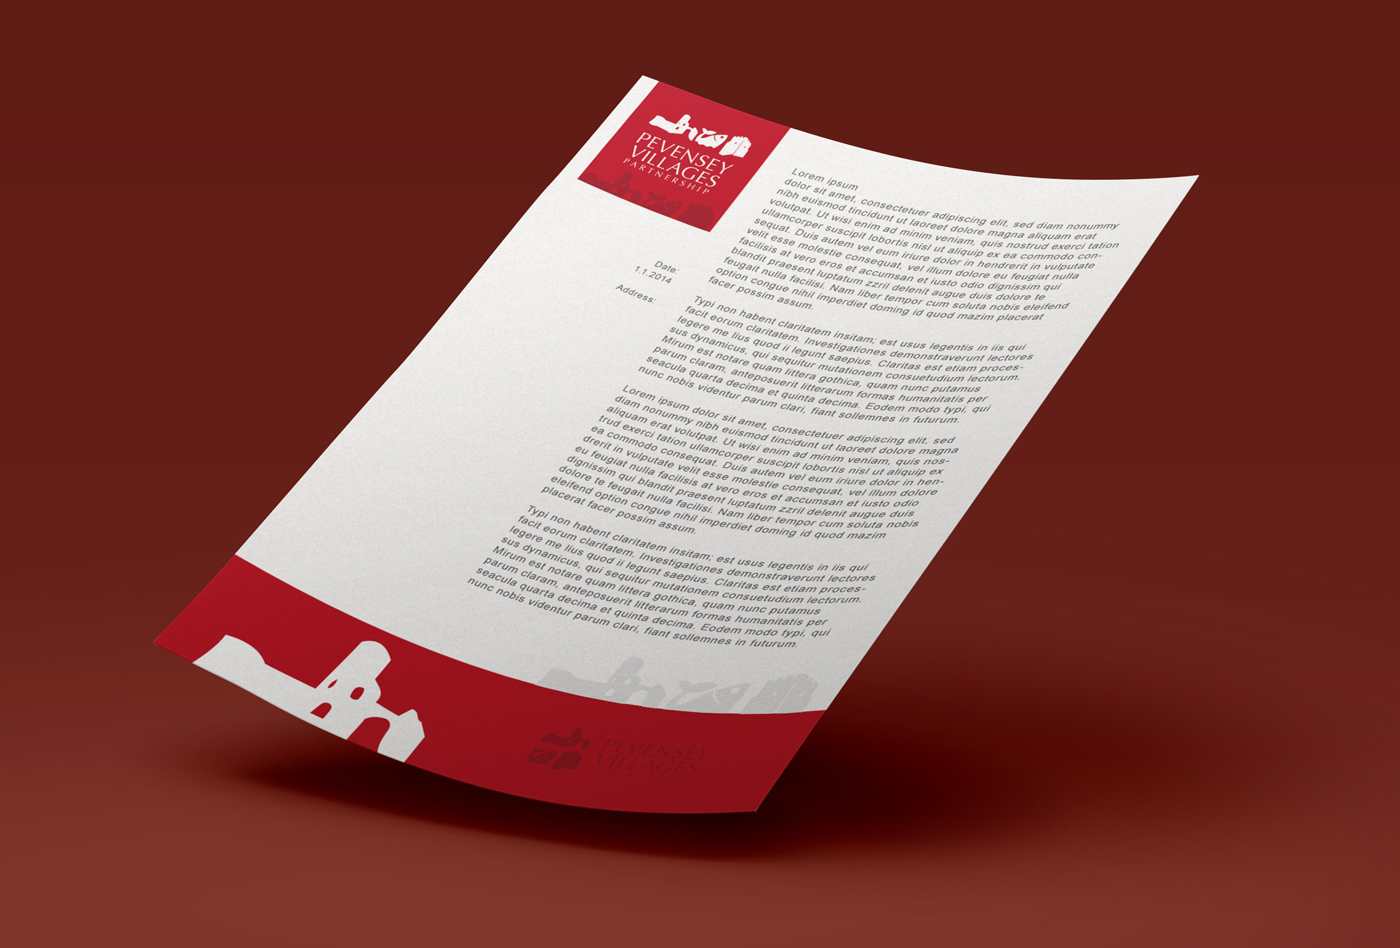 envelopes_letterheads02.jpg